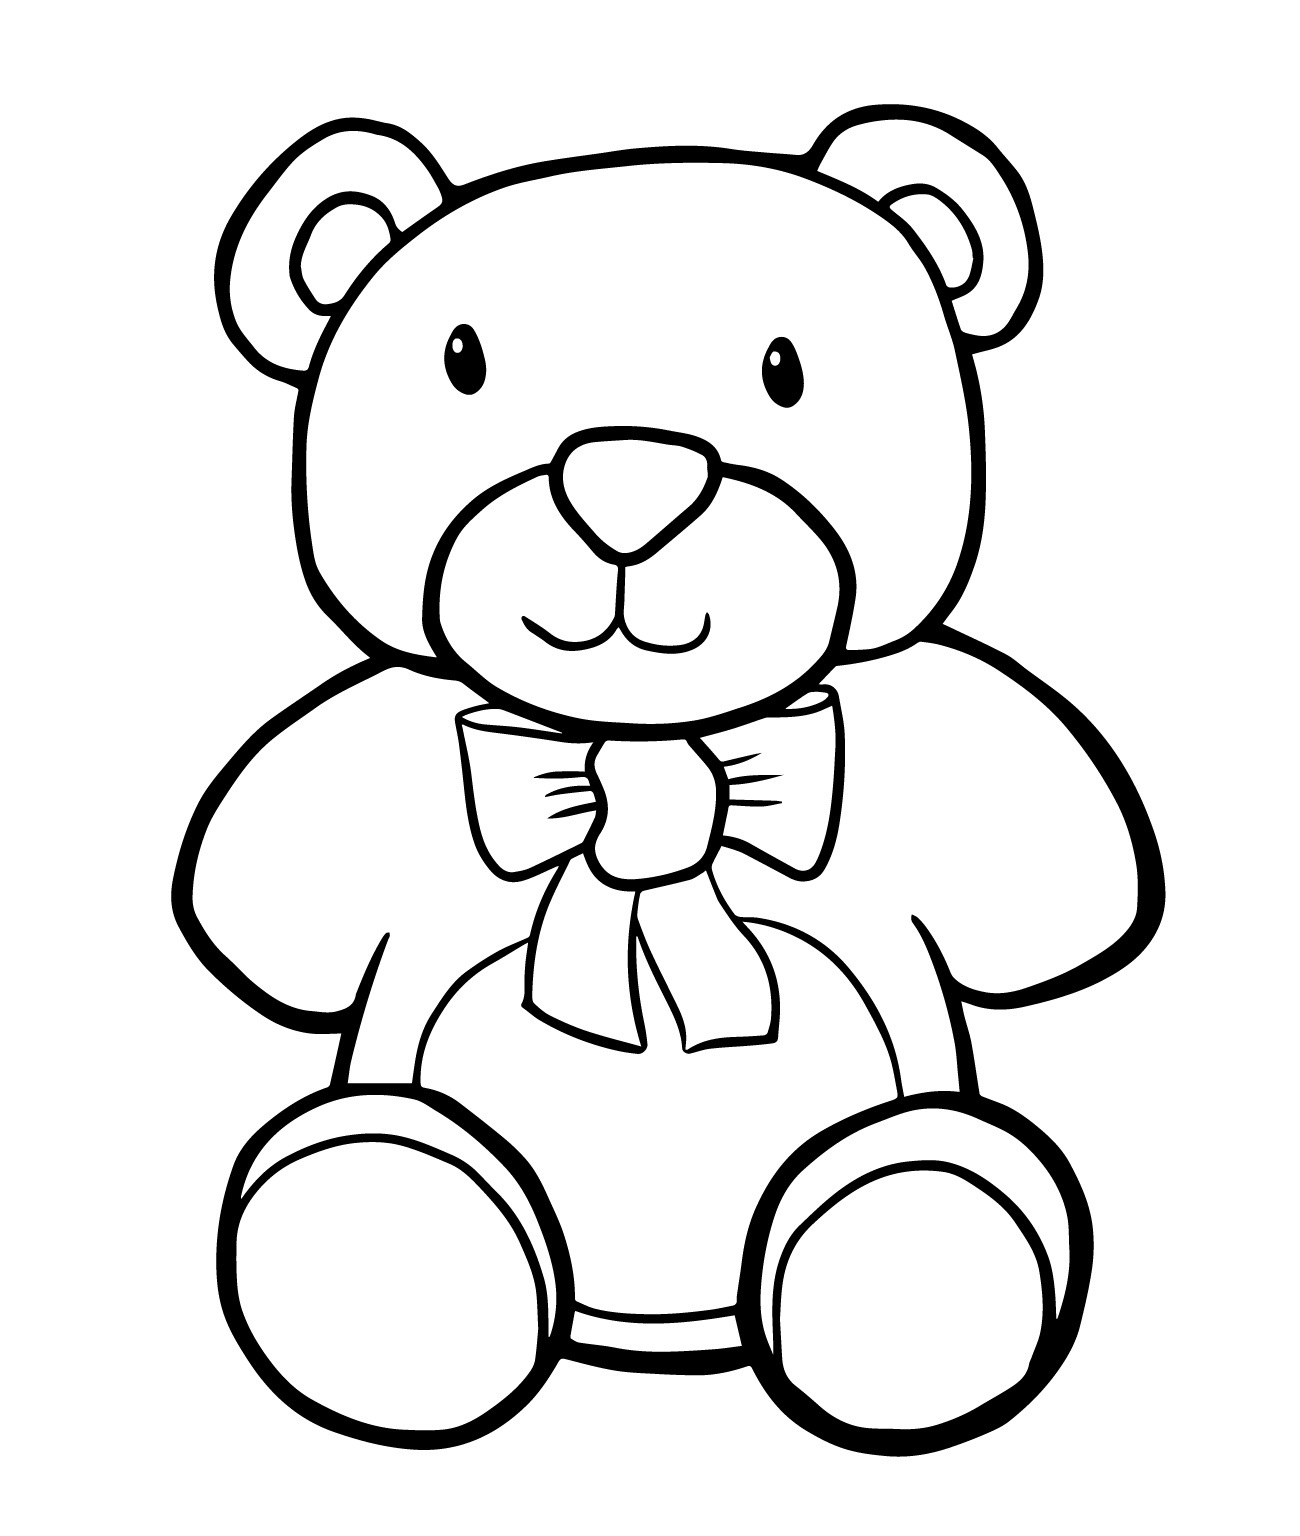 1300x1536 Useful Teddy Bear Colouring Sheets Free Printable Coloring Pages